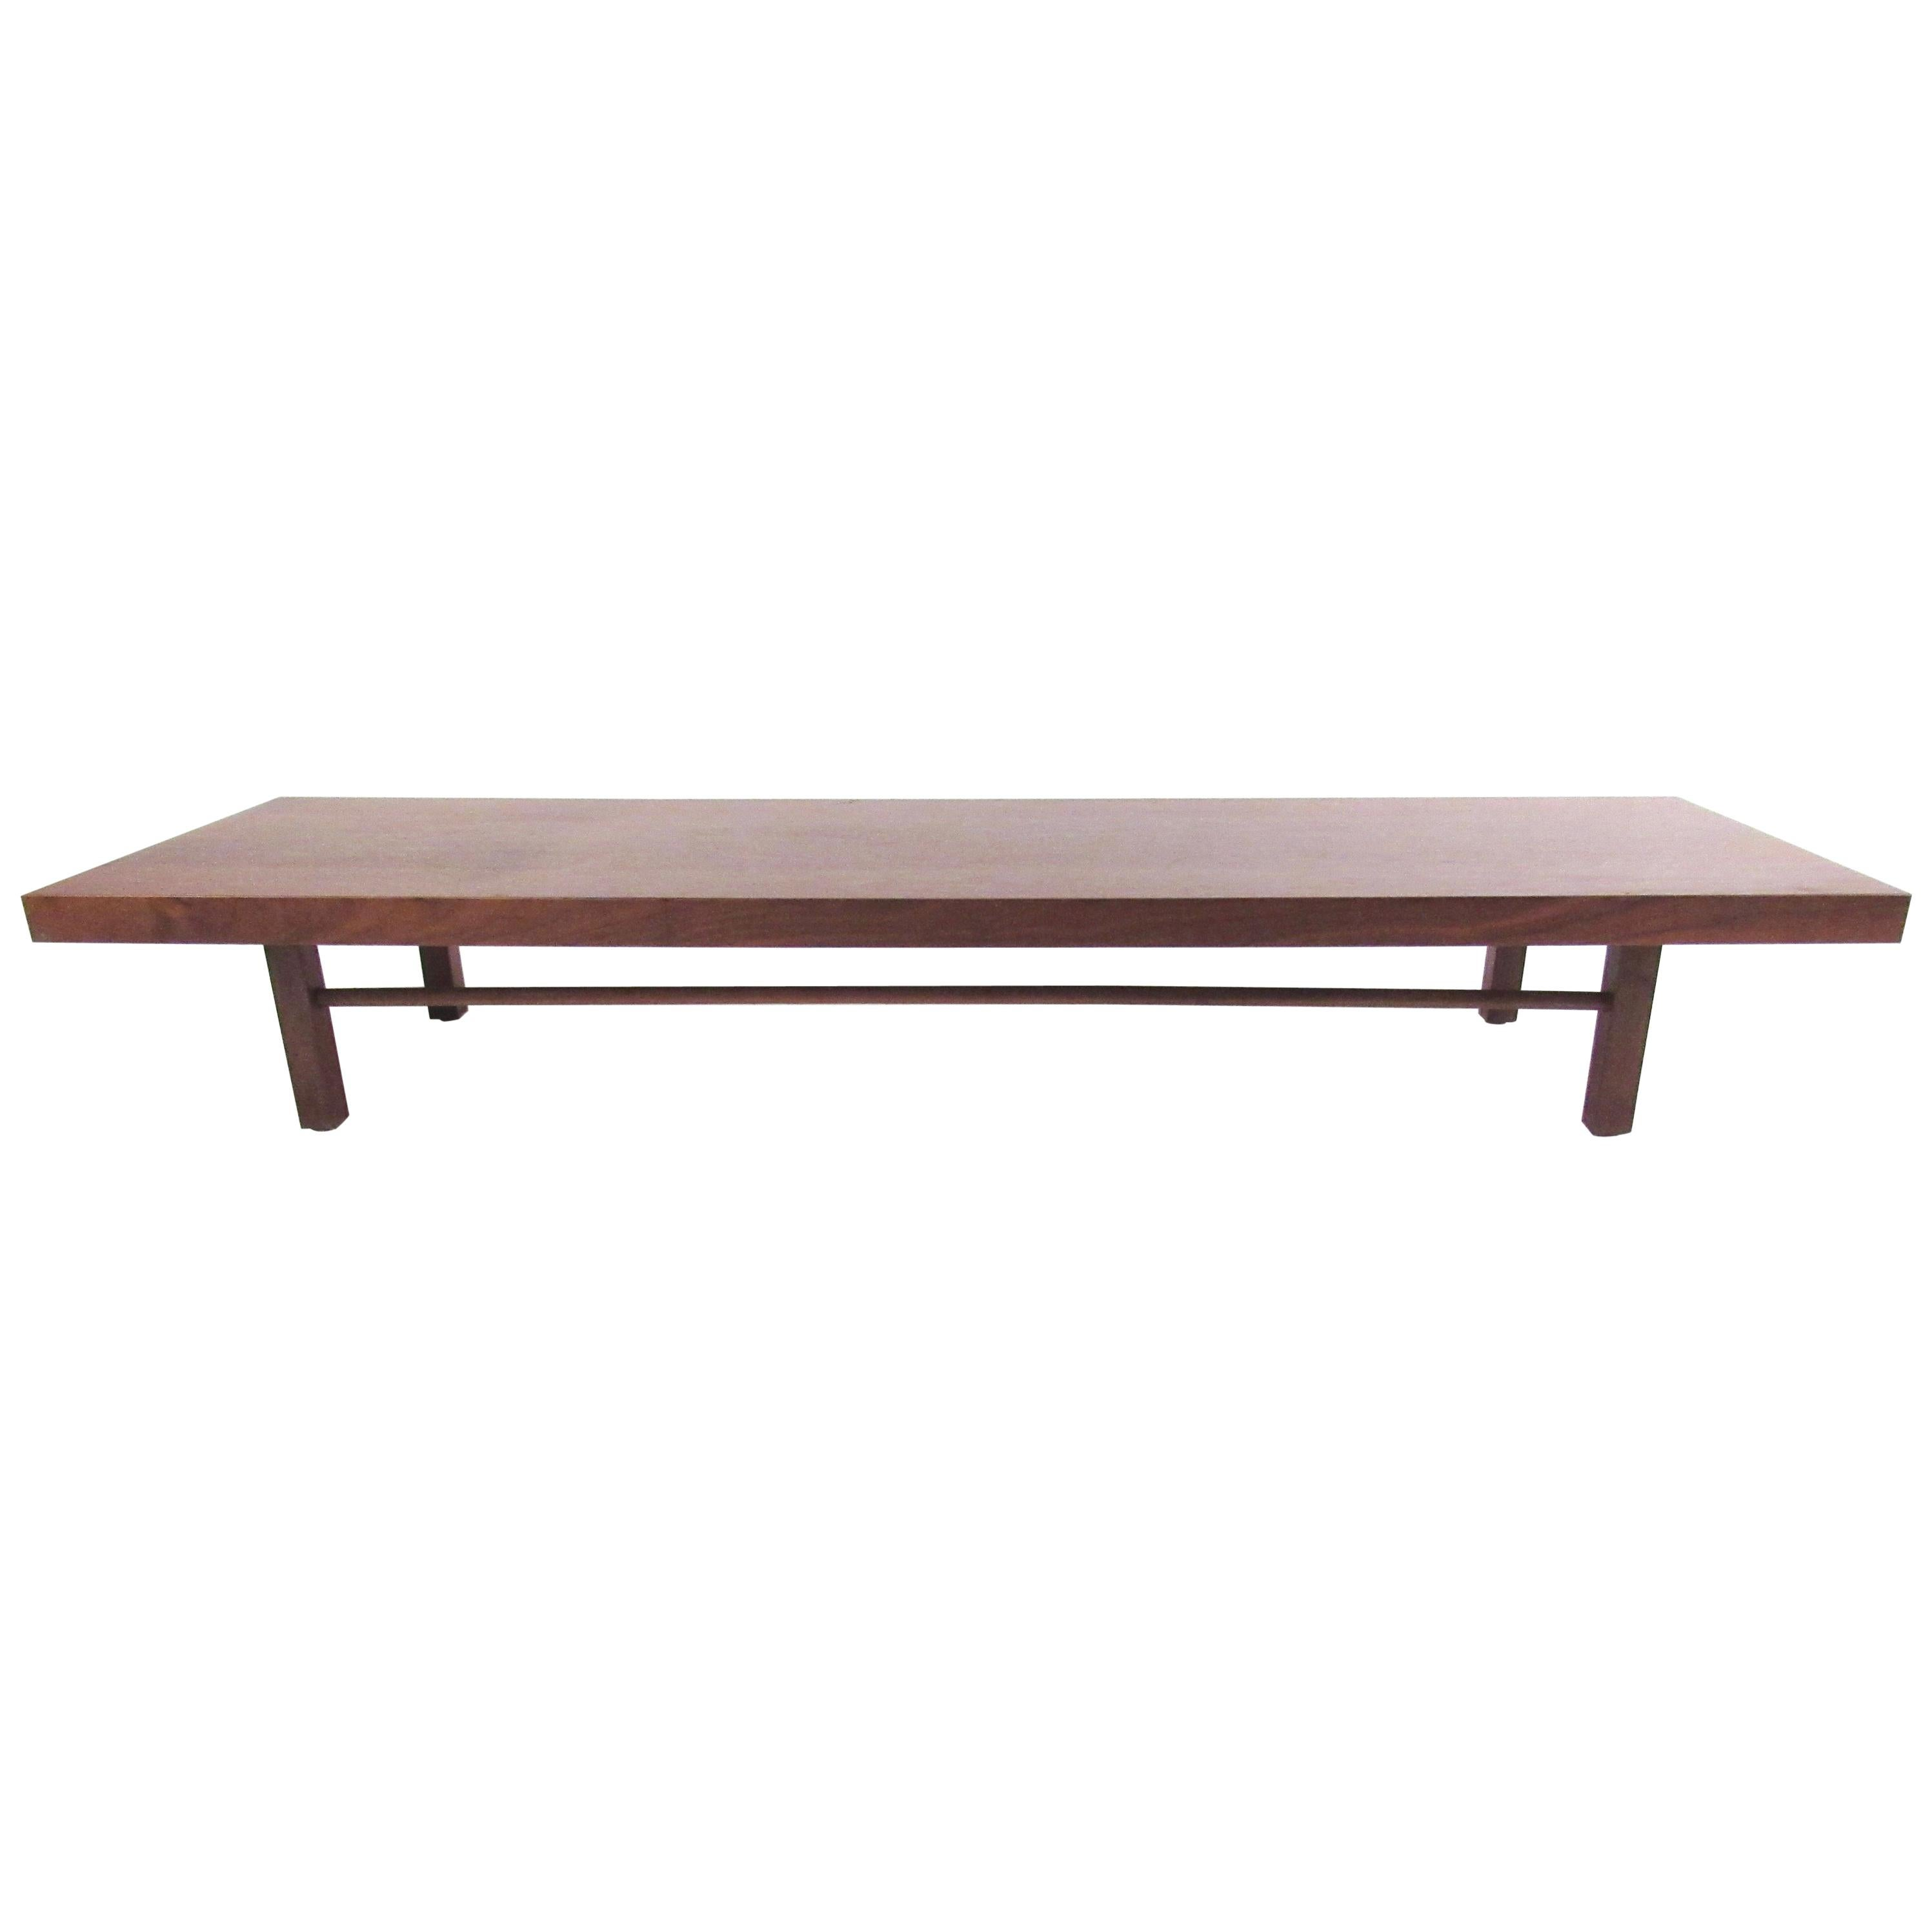 Ordinaire Long Low Coffee Table By Milo Baughman For Thayer Coggin